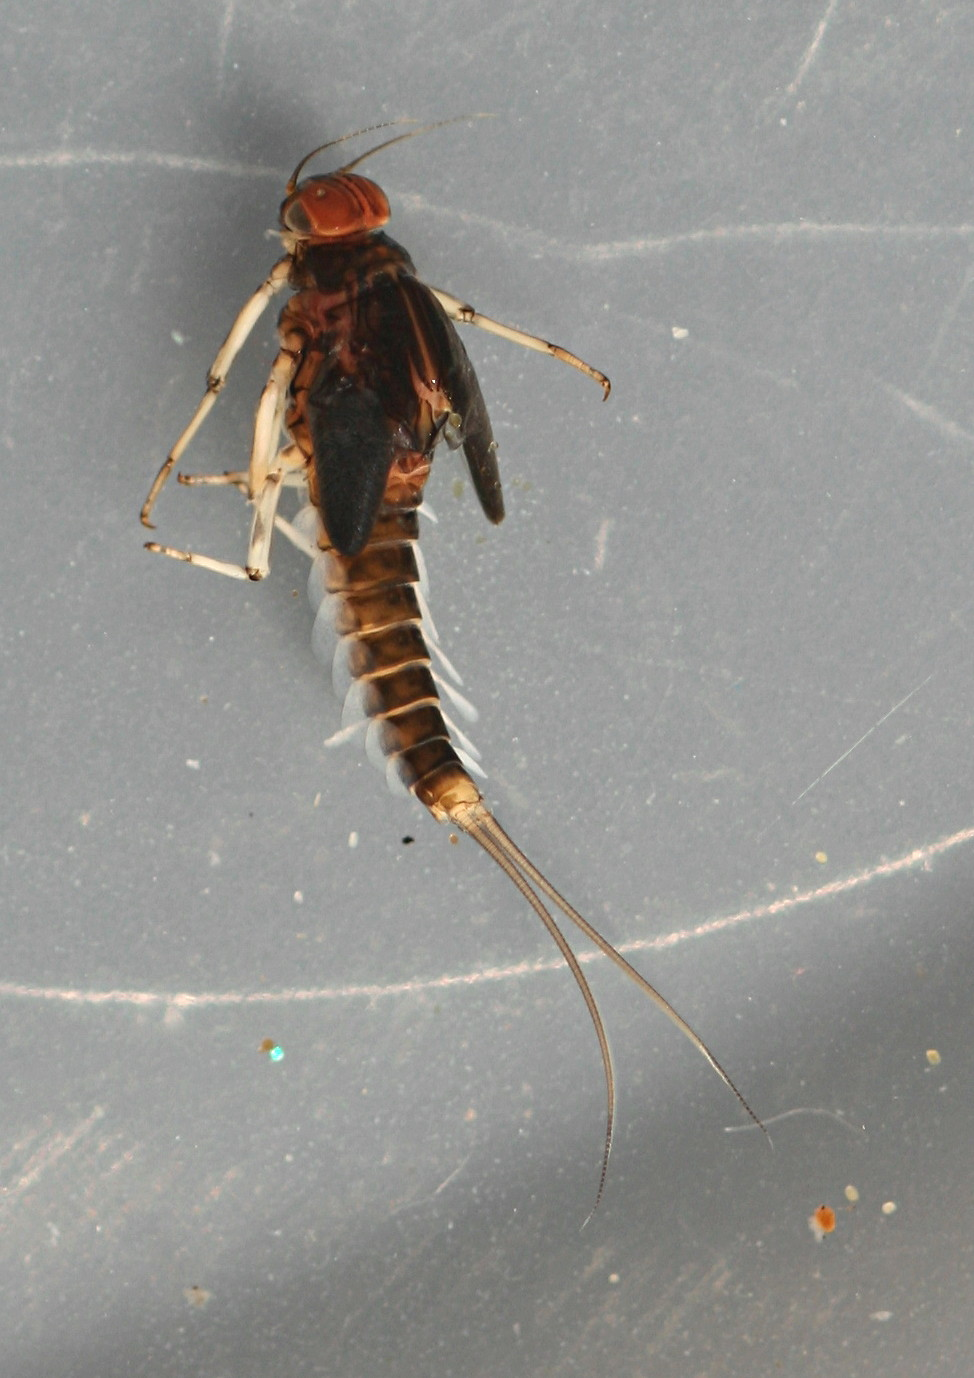 February 15, 2014. Mature male nymph. 7 mm (excluding cerci). In alcohol.